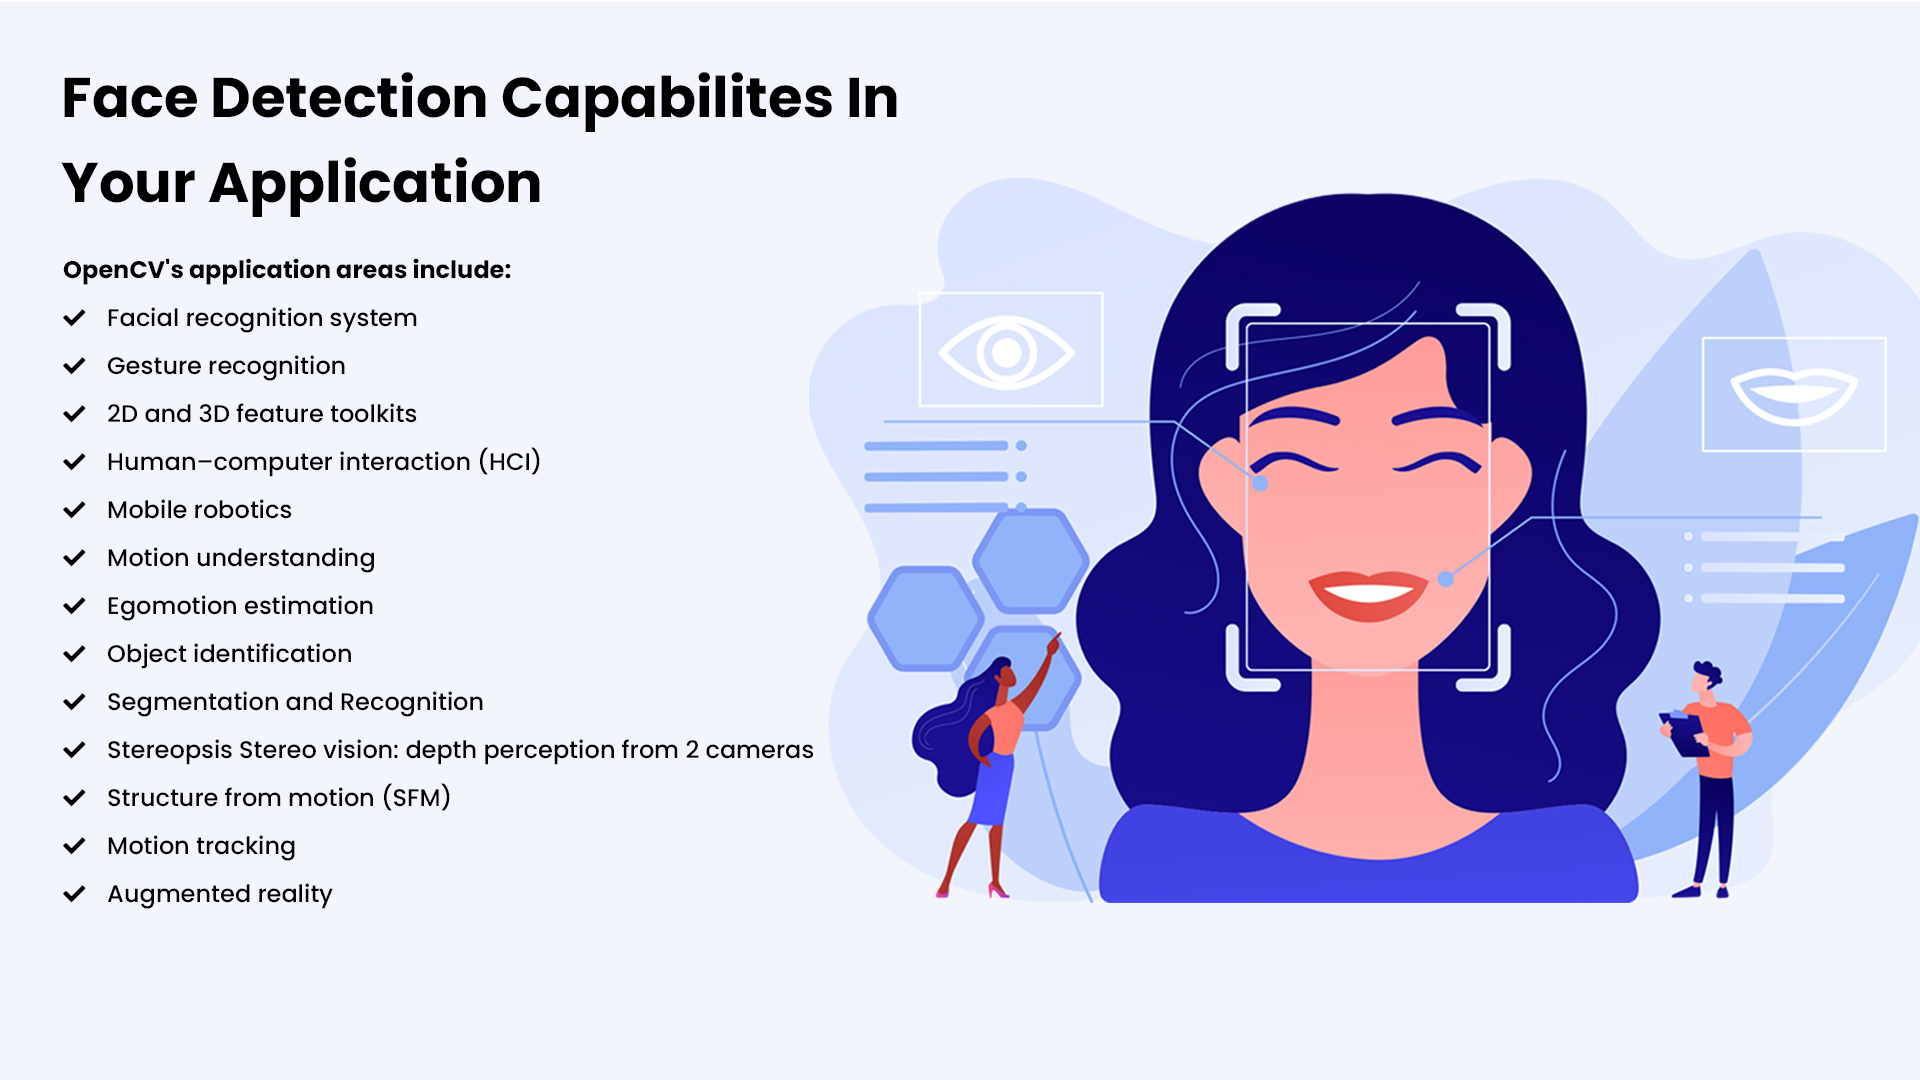 Face Detection Capabilites In Your Application